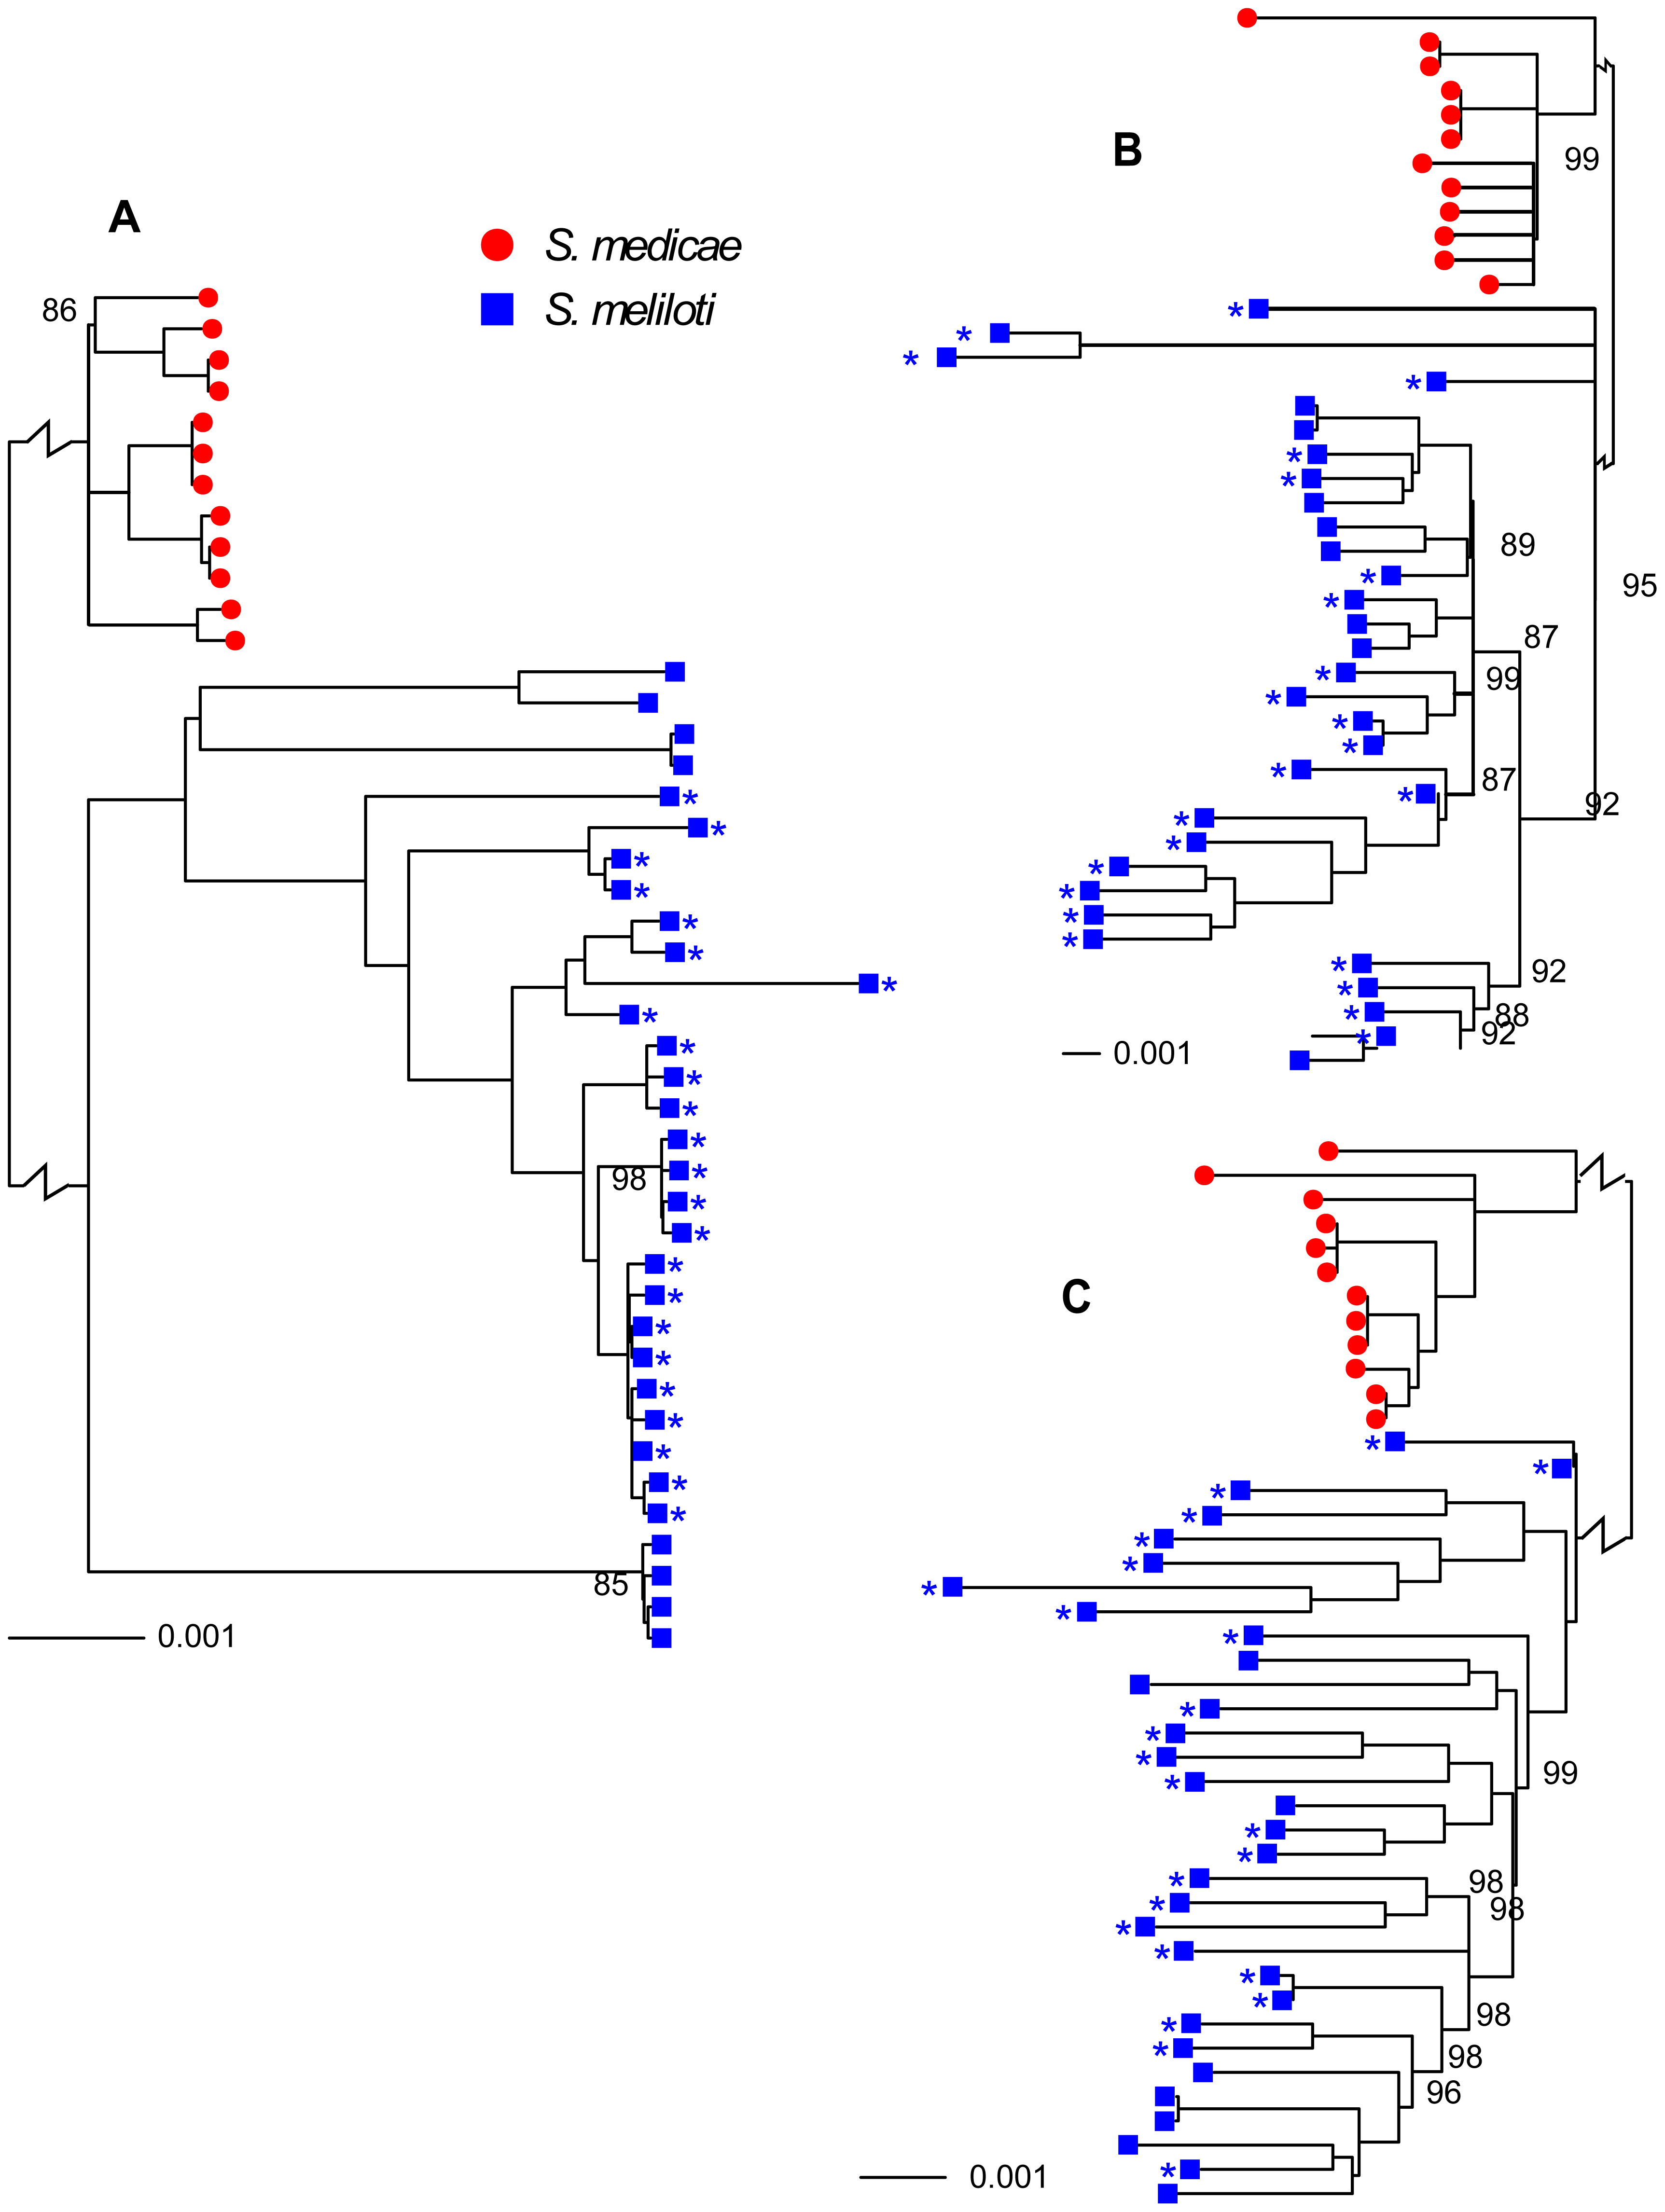 Neighbor-joining trees showing relationships among 32 <i>S. meliloti</i> (blue squares) and 12 <i>S. medicae</i> (red circles).